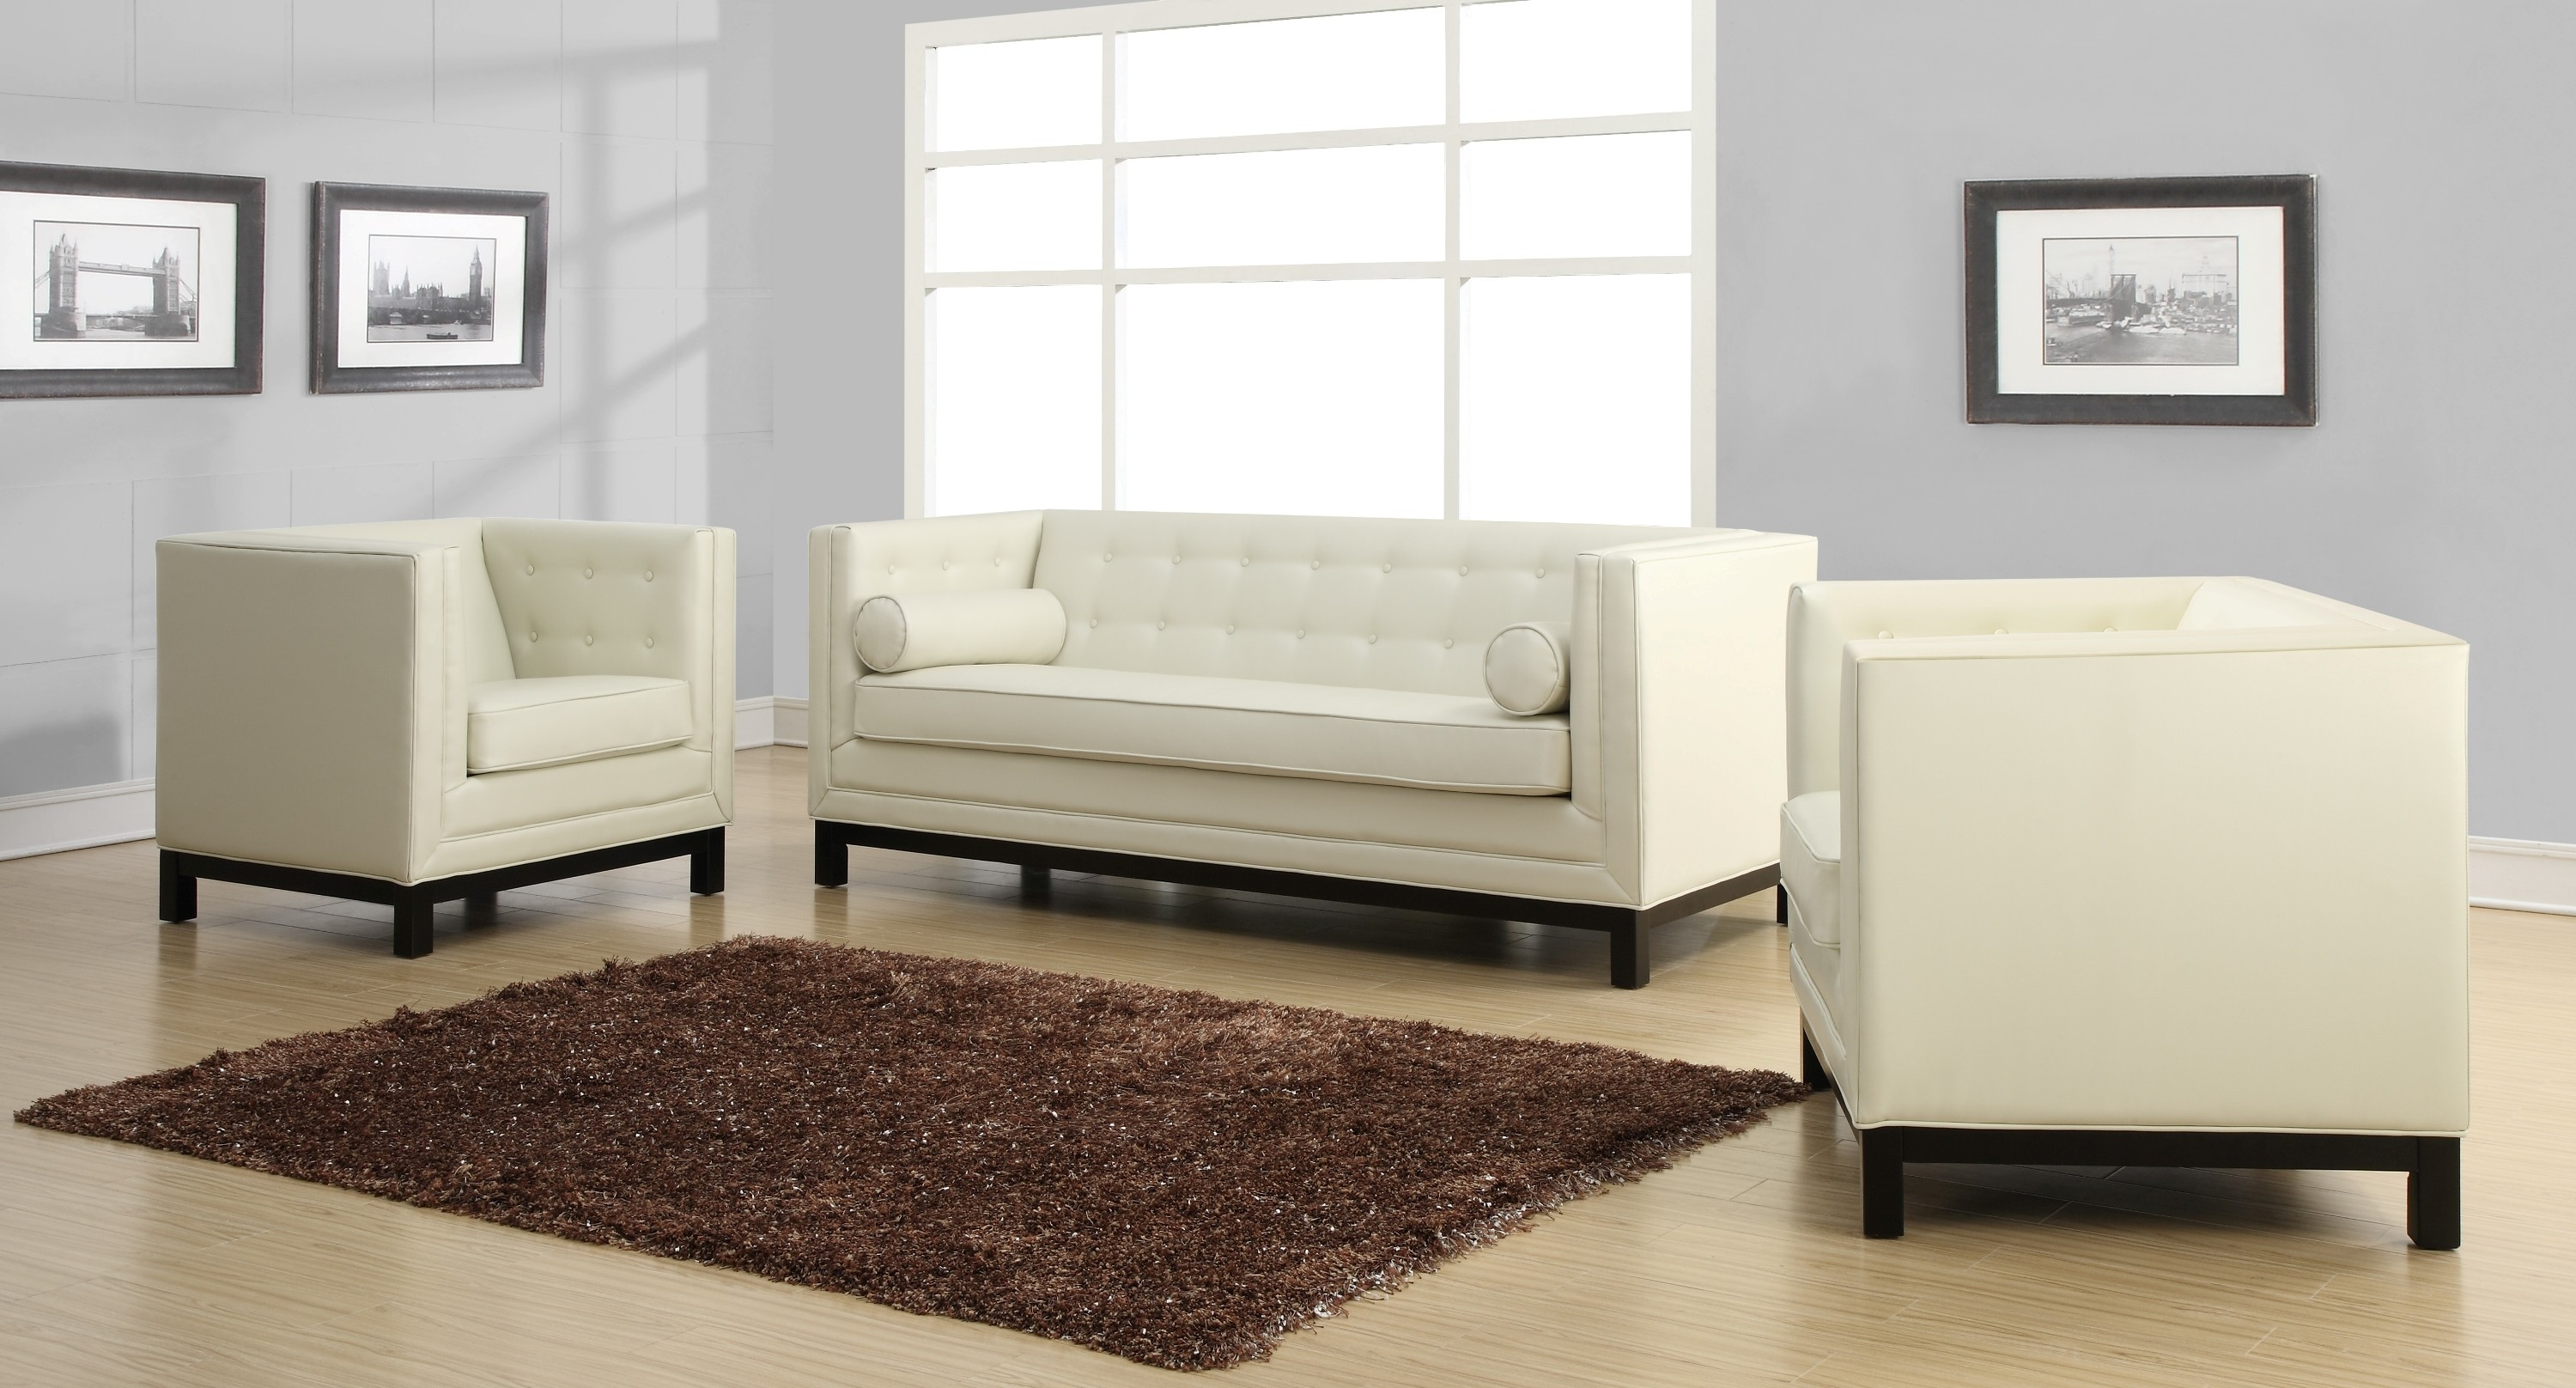 zoe cream living room set from tov zoe coleman furniture